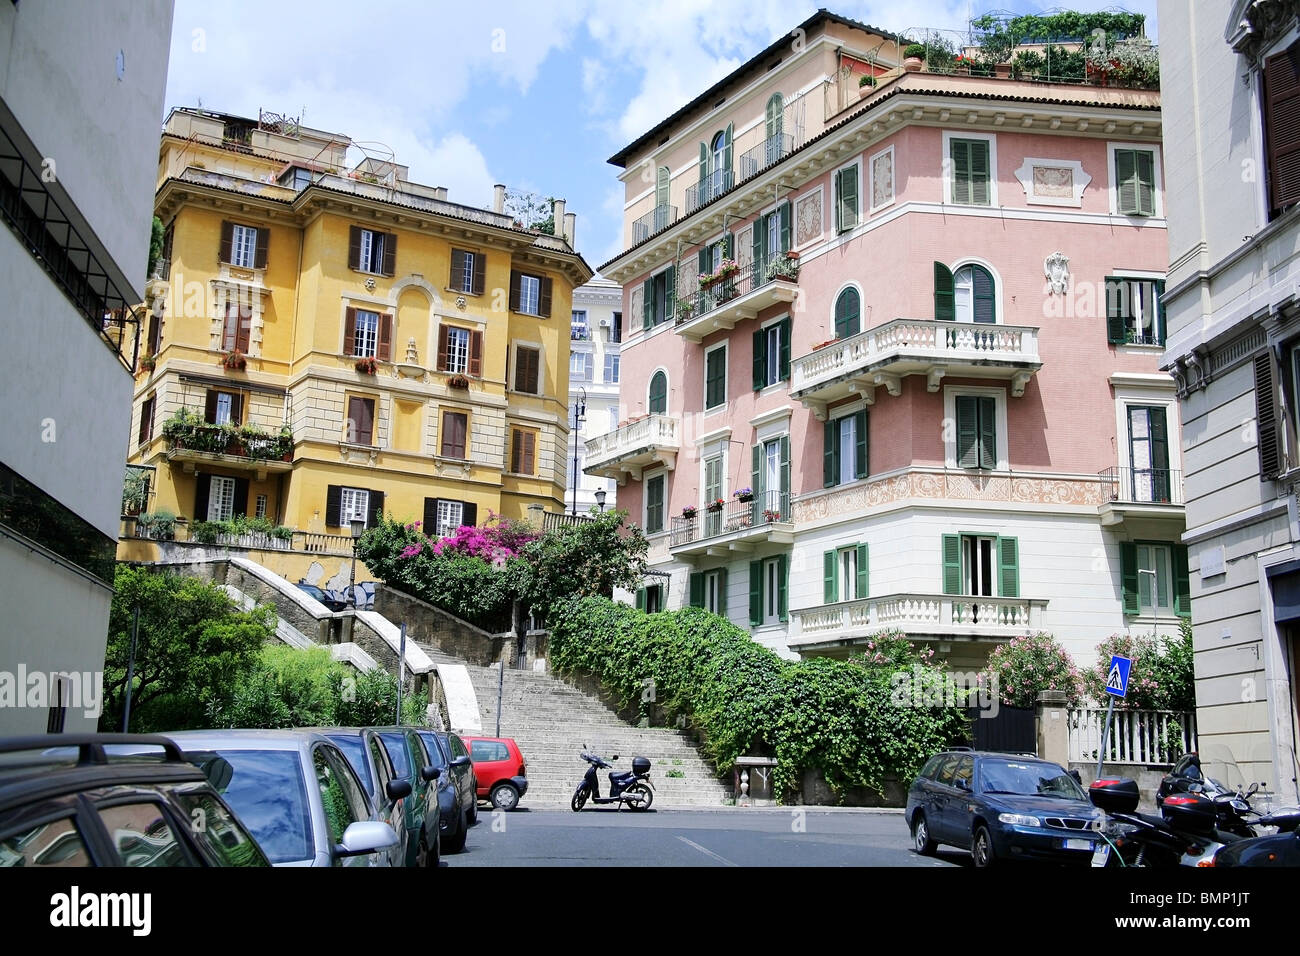 Rome Italy The Streets Of Rome Stock Photo Royalty Free Image 29987744 Alamy